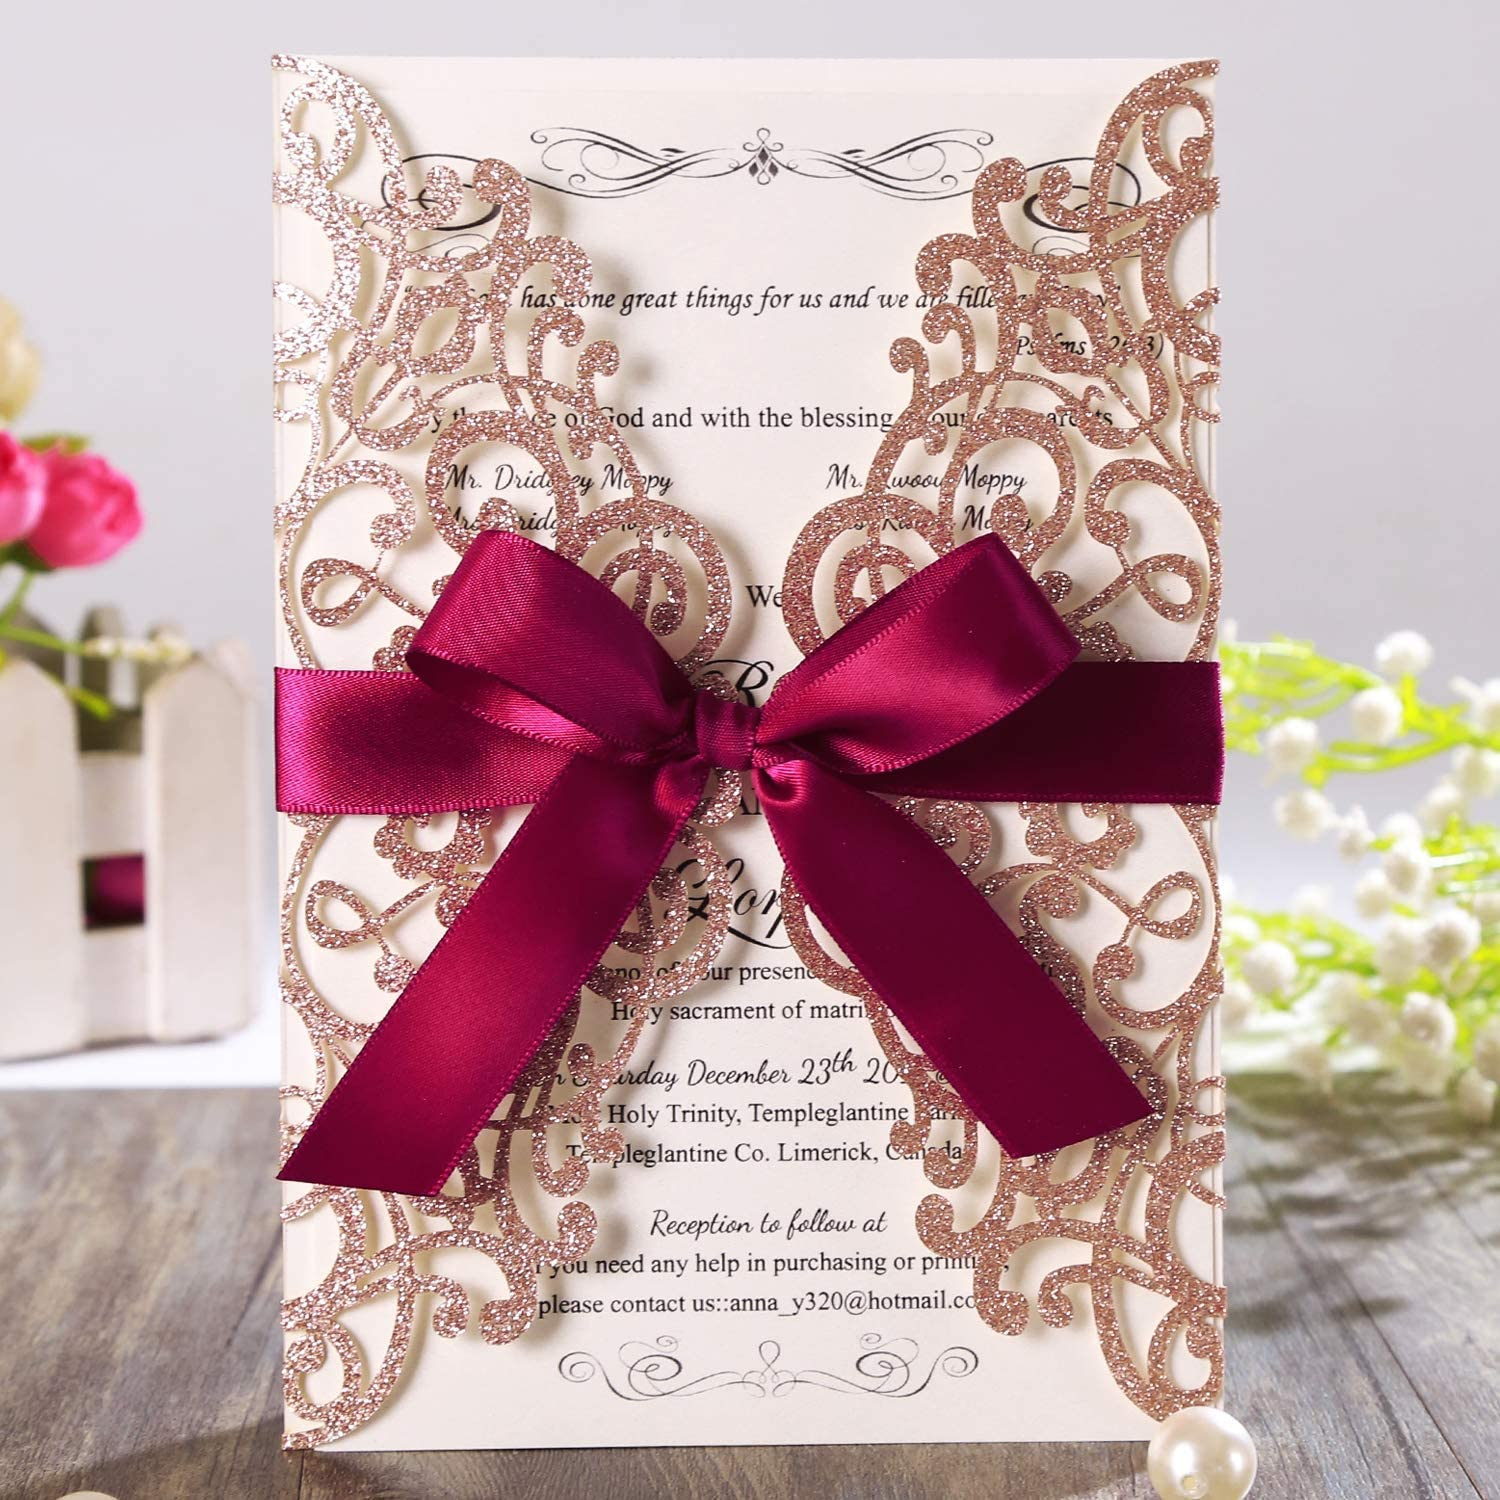 """Hosmsua 3x Laser Cut Lace Rose Drill Wedding Invitation Cards 3"""" x 3.3""""  with Burgundy Ribbon and Envelopes for Bridal Shower Engagement Birthday"""